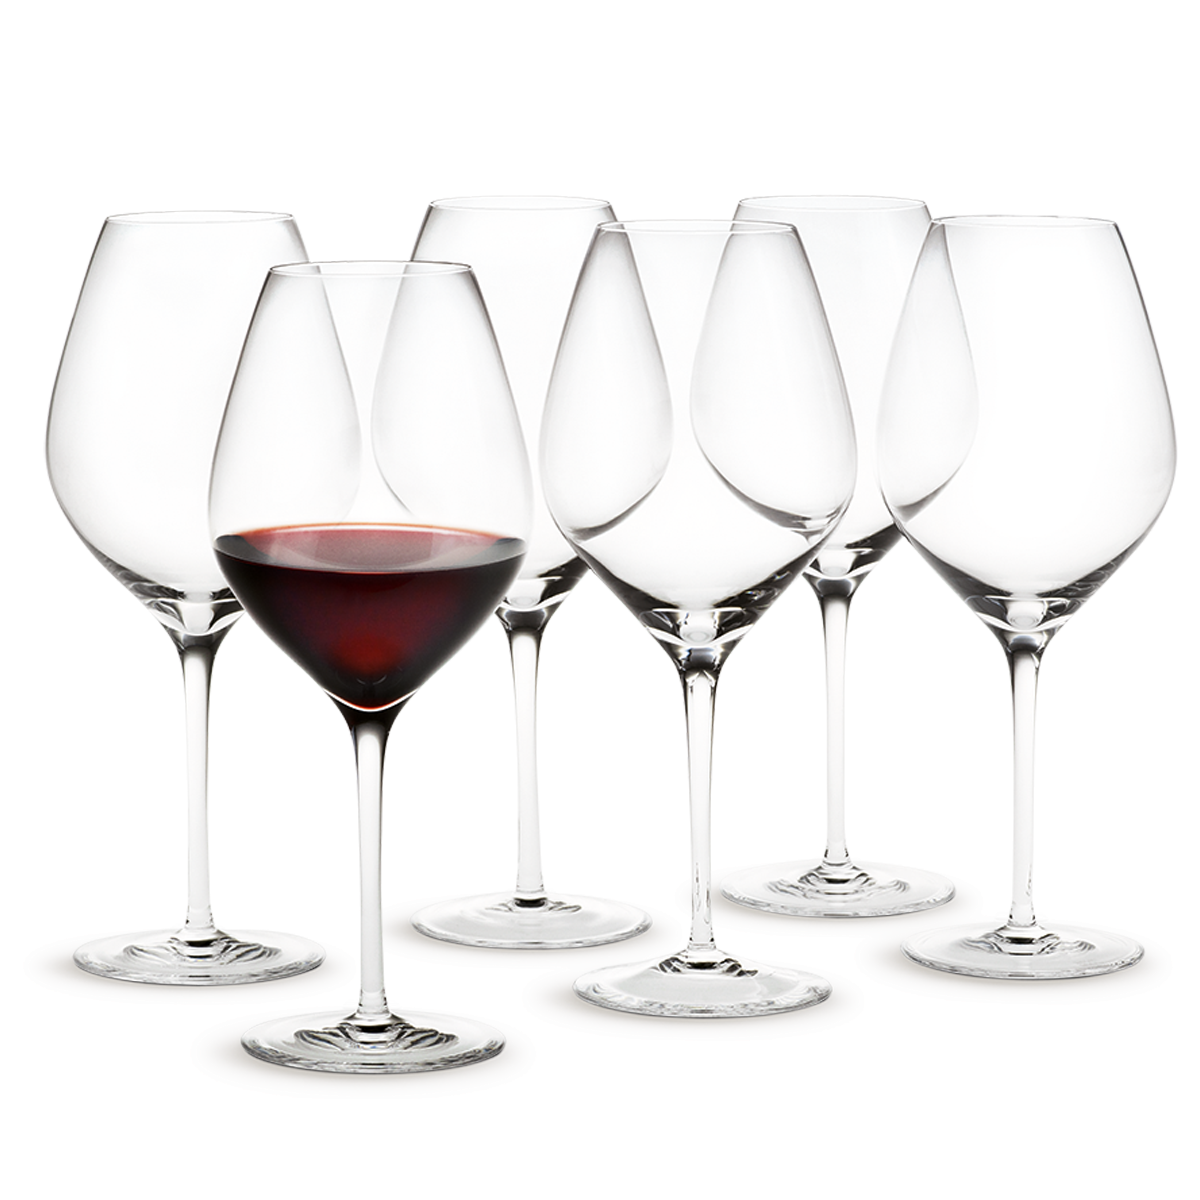 Cabernet Red Wine Glass 50 Cl Gift Box With 6 Glasses Holmegaarddk